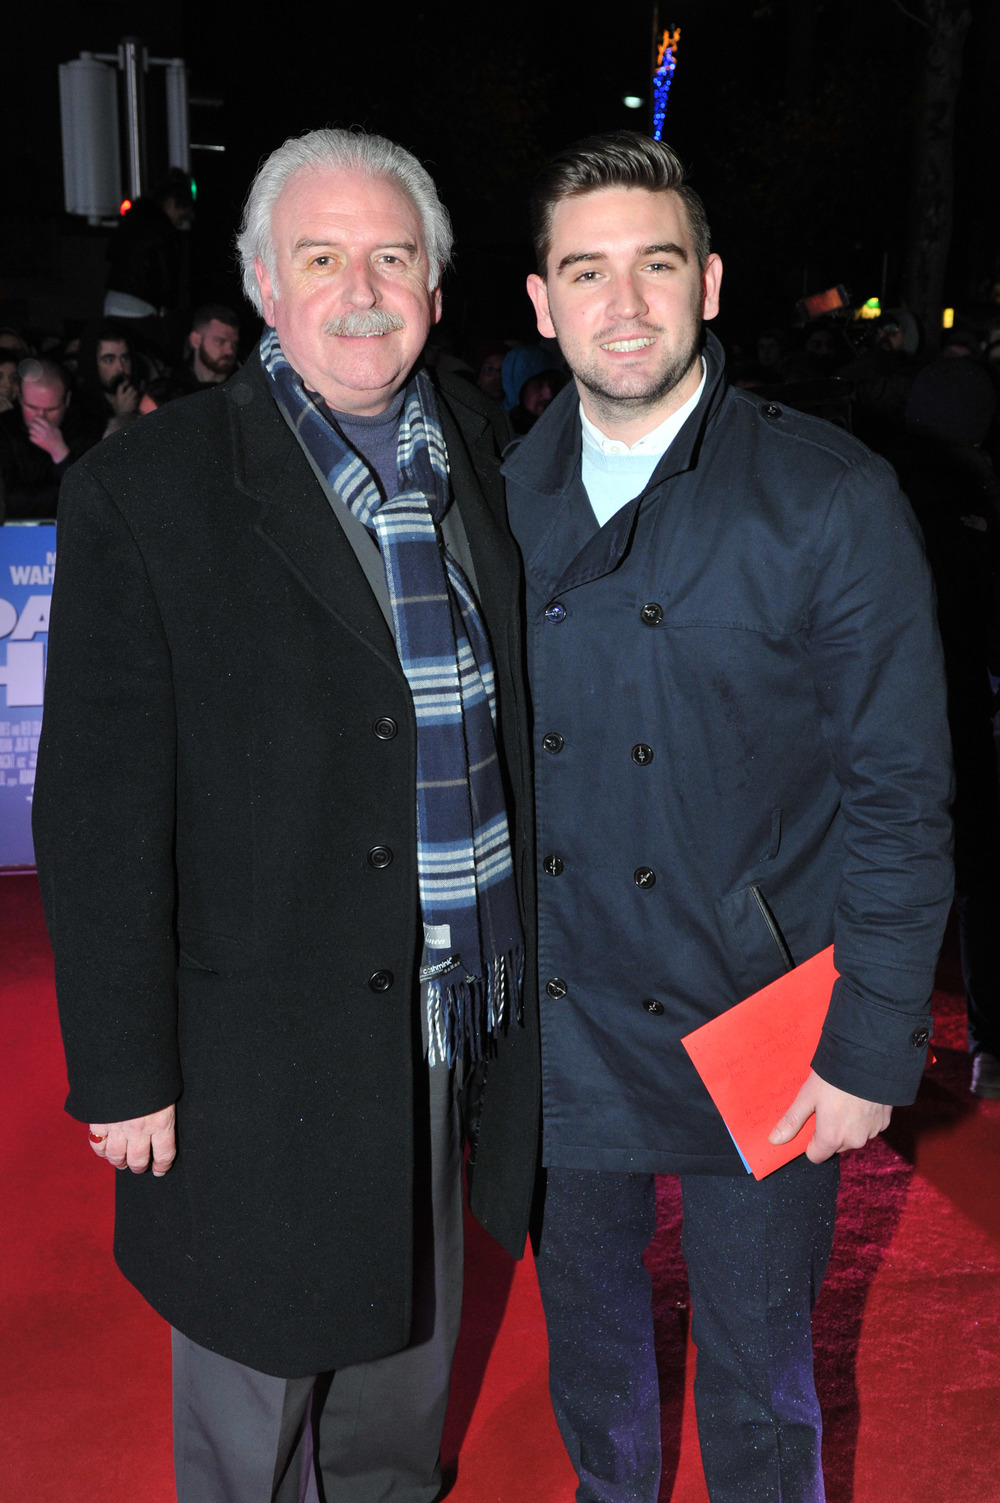 DUBLIN, IRELAND - DECEMBER 7: TV presenter Marty Whelan with his son Thomas Whelan attends the Dublin Premiere of 'Daddy's Home' at the Savoy Cinema on December 7, 2015 in Dublin, Ireland. (Photo by Clodagh Kilcoyne /Getty Images for Paramount Pictures)